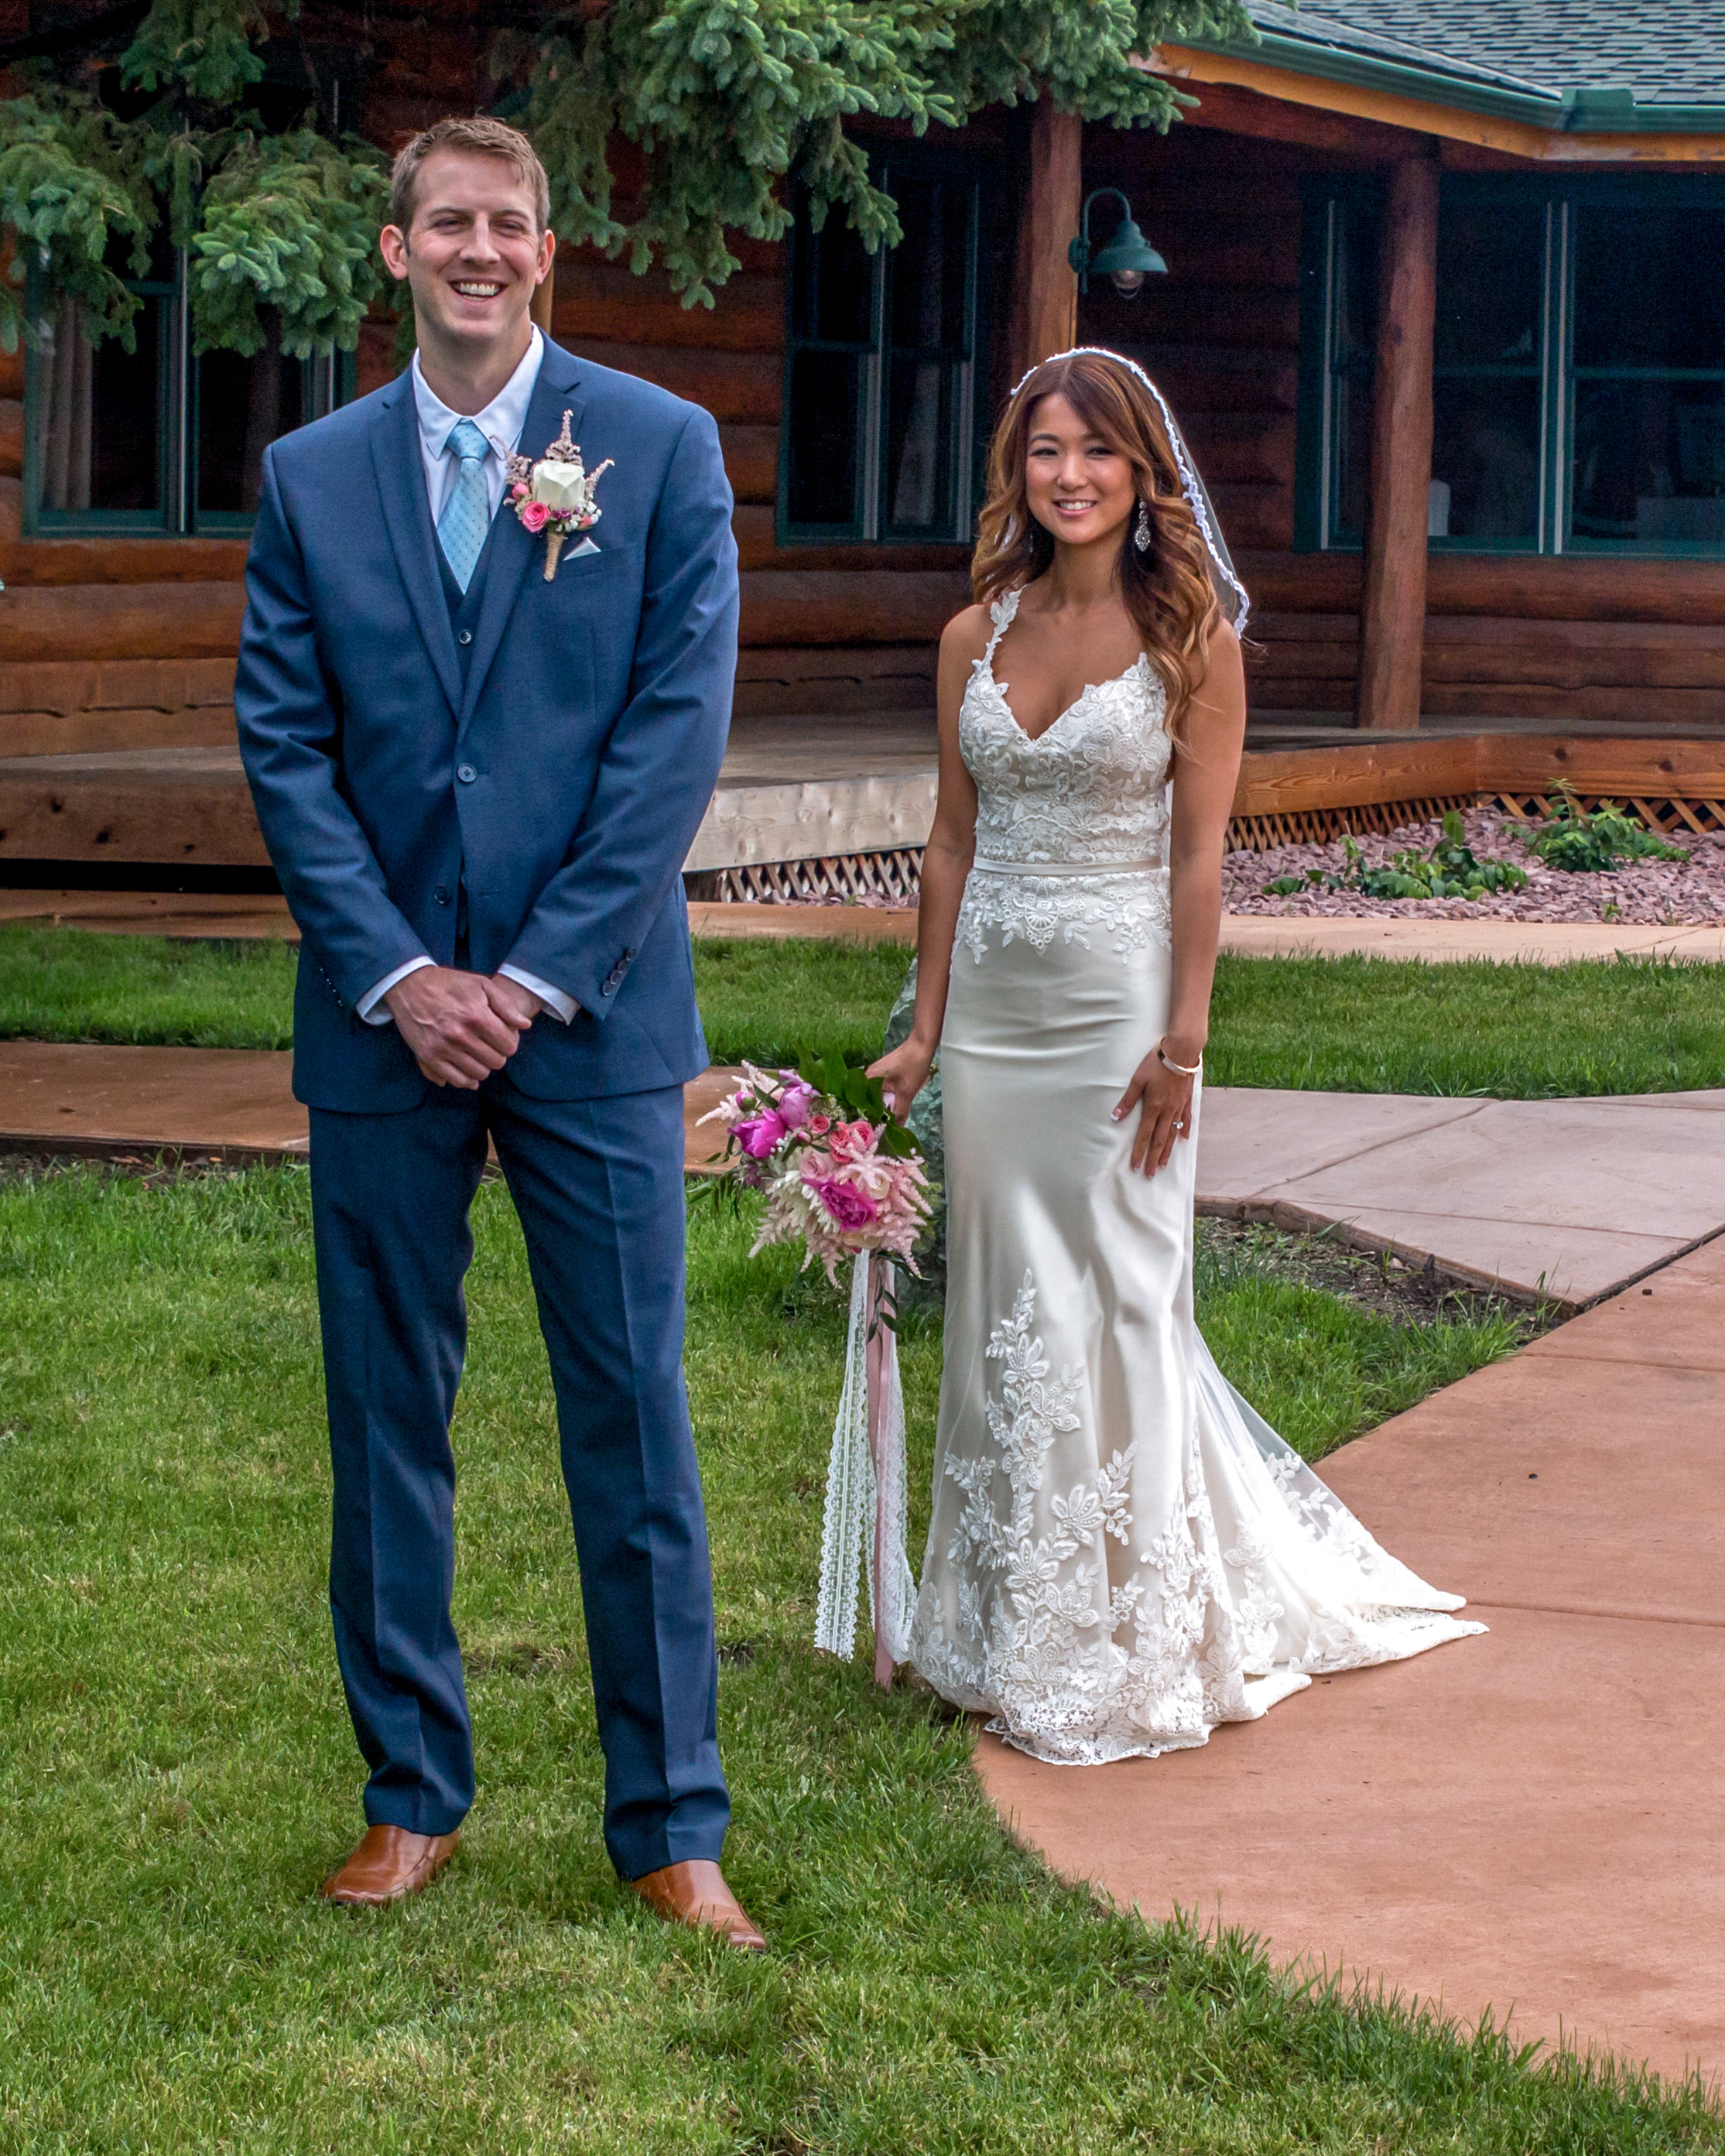 Minnesota Wedding at Glenhaven, outdoor ceremony, Fab Weddings, blue tie